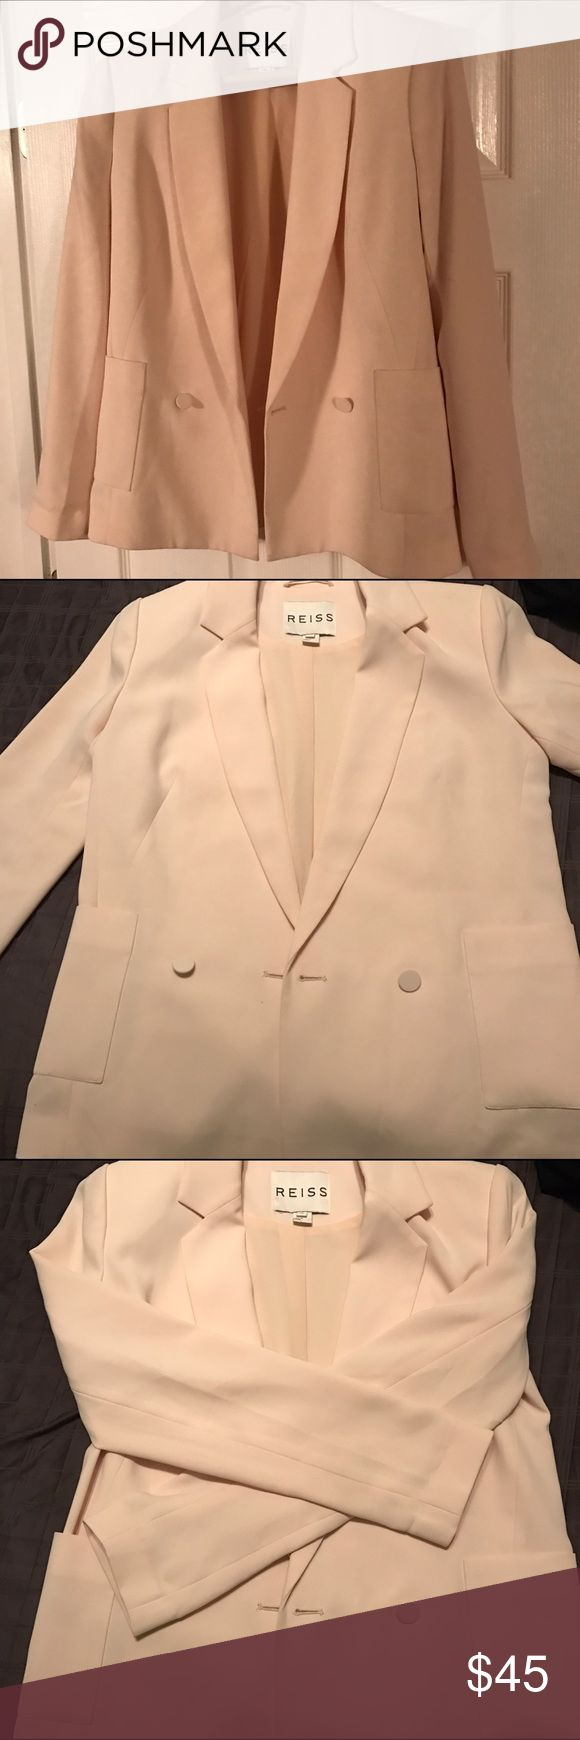 REISS Blazer (womens) Reiss cream color blazer. Size xs. Small dirt mark on back. Can be easily dry cleaned. Reiss Jackets & Coats Blazers